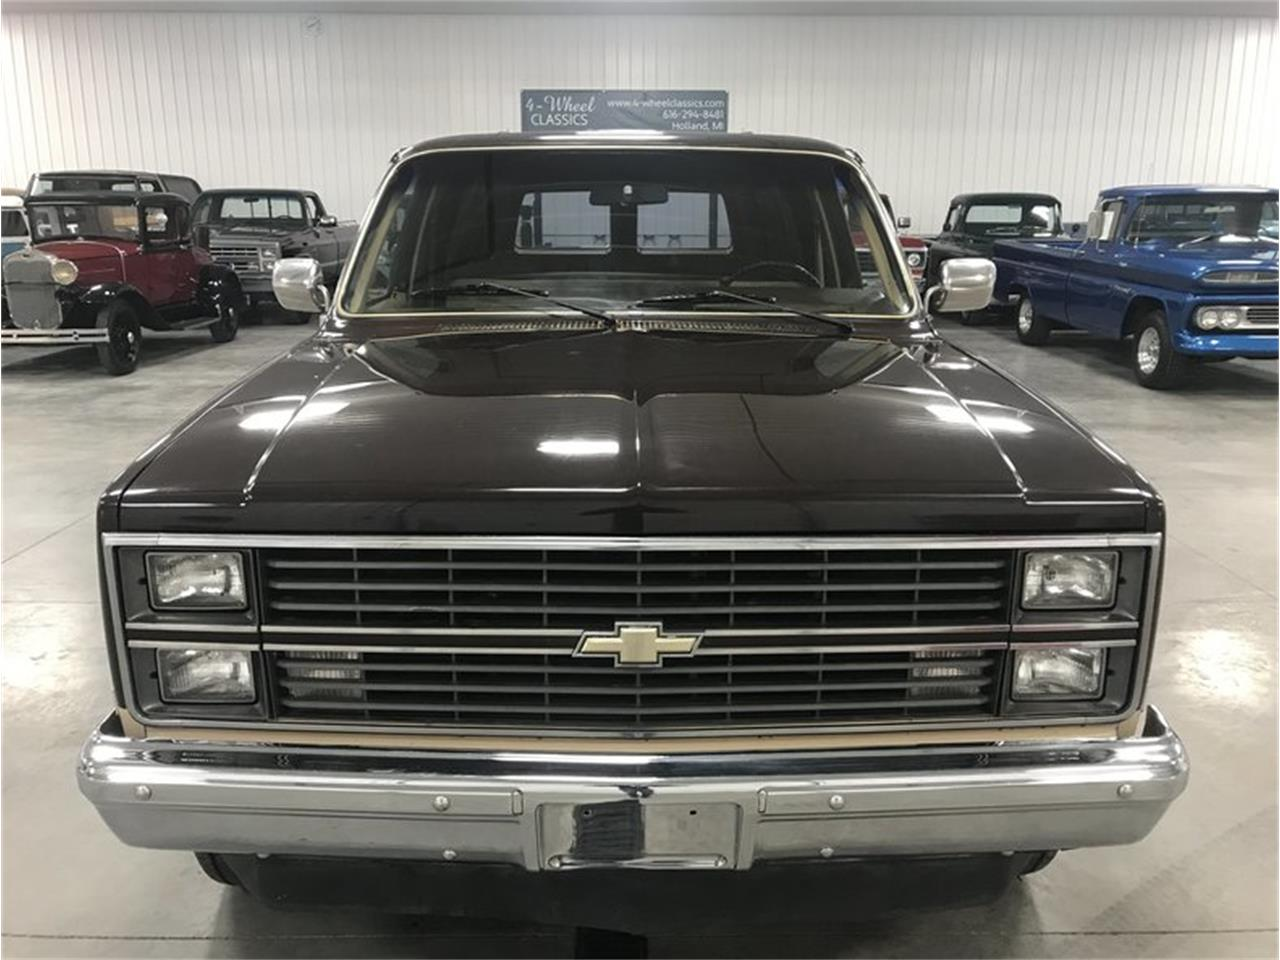 Large Picture of 1984 Suburban - $11,900.00 Offered by 4-Wheel Classics - M8RC